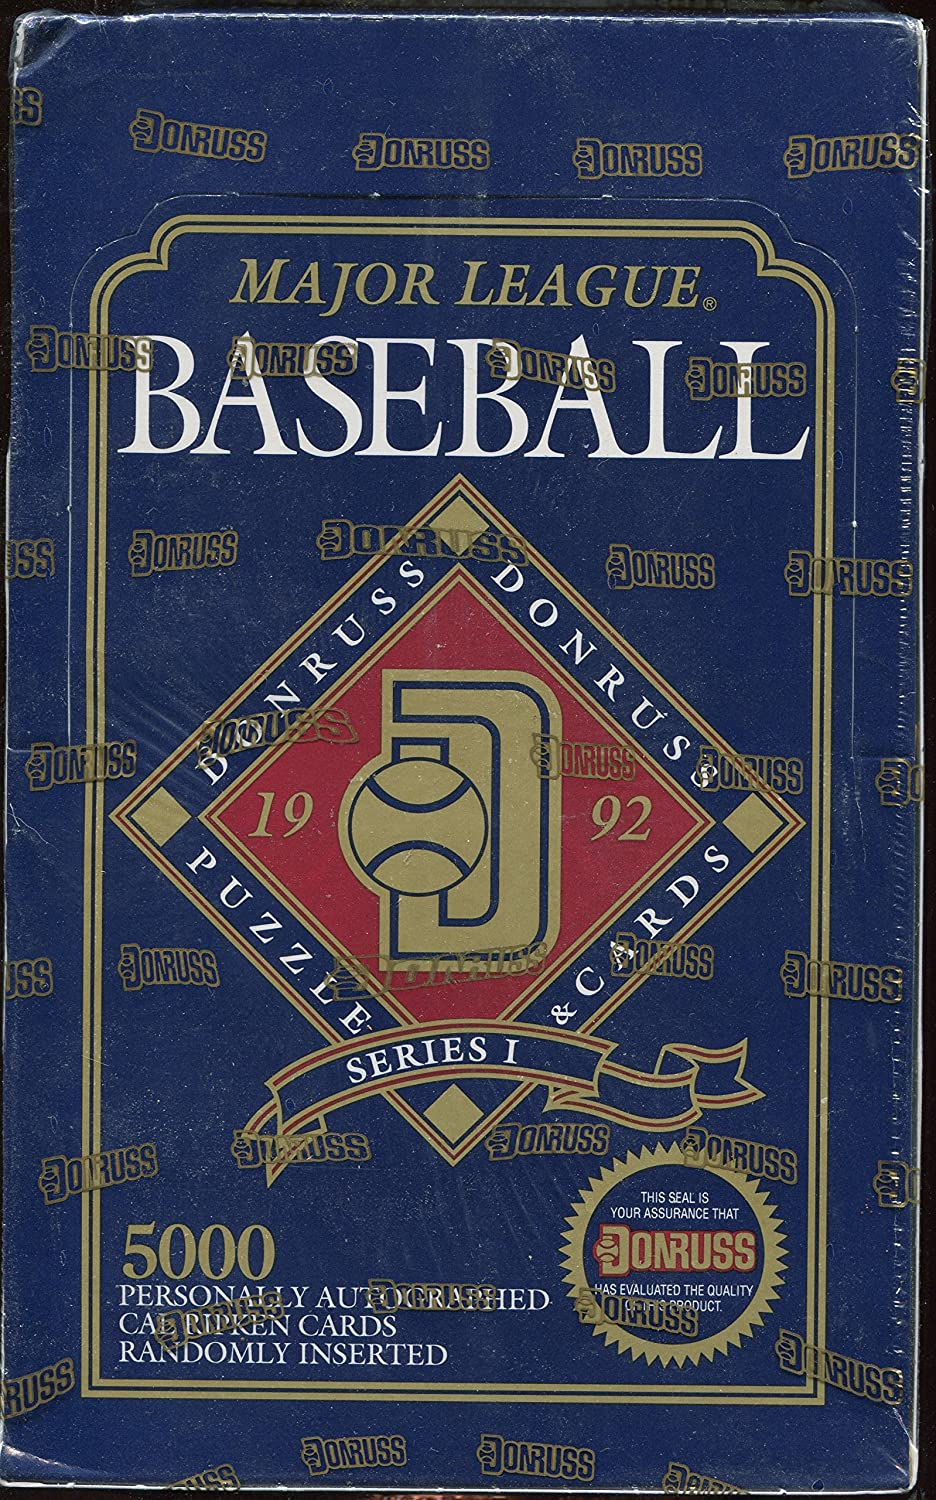 1992 Donruss Series I Major Puzzle Baseball Bombing new Beauty products work Unopene Cards League